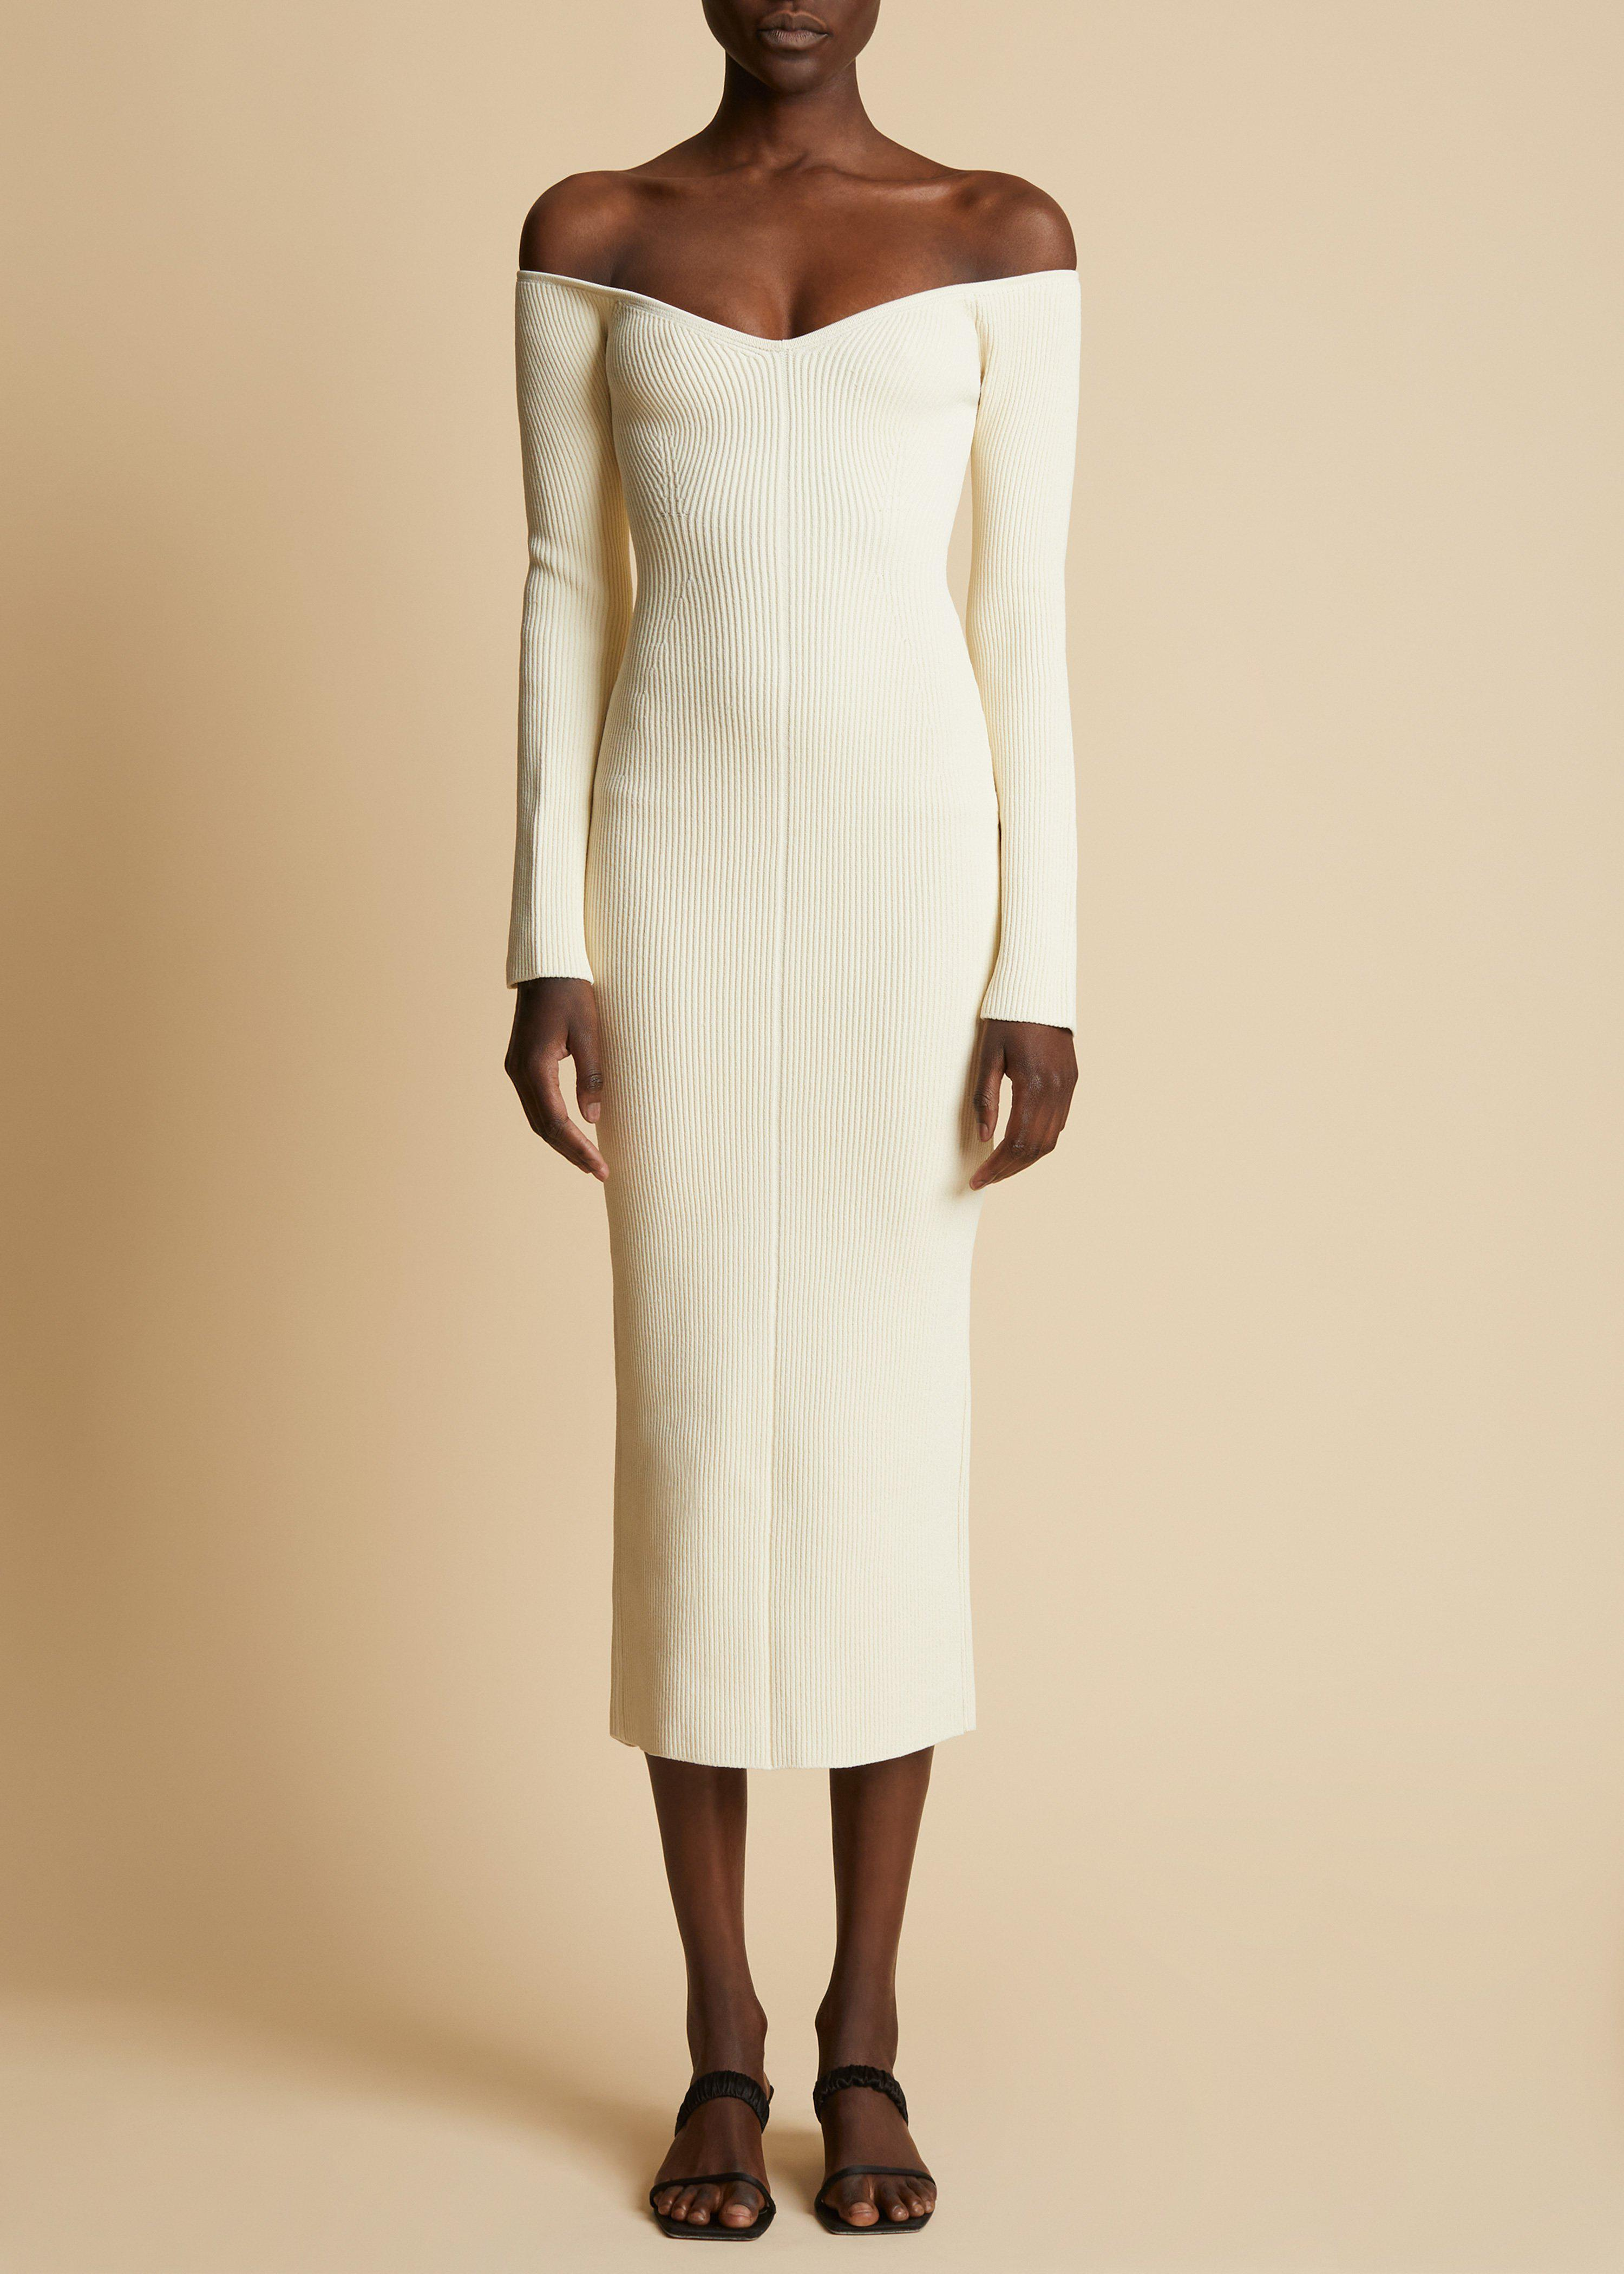 The Pia Dress in Ivory 1